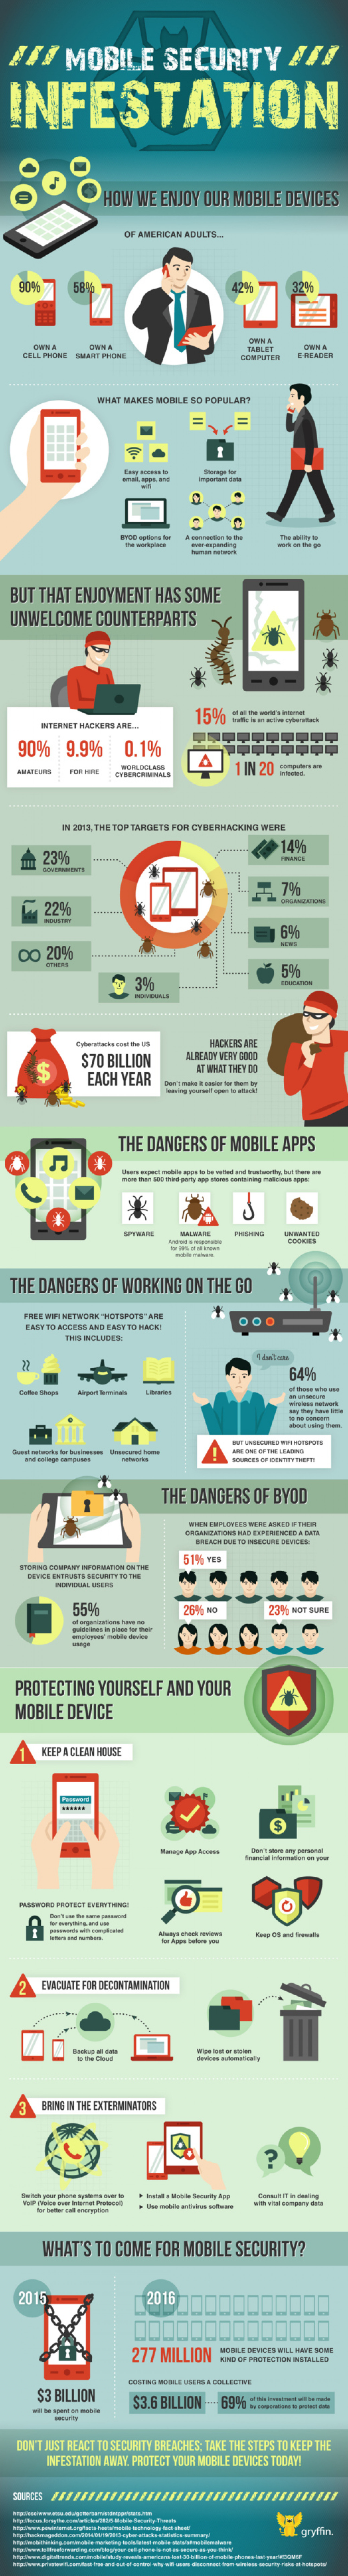 Mobile Security Infestation Infographic